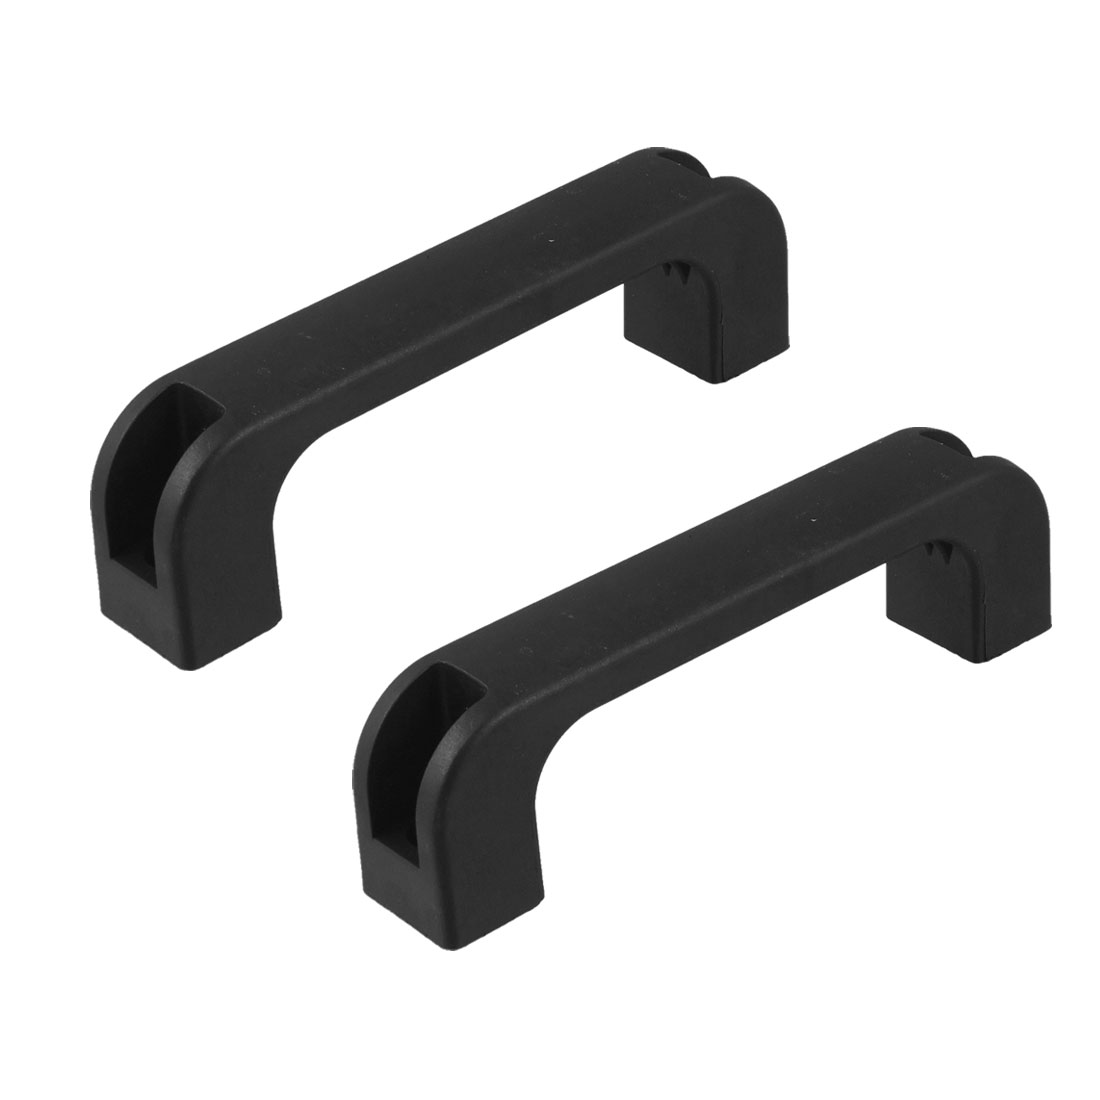 2 Pcs Cabinet Drawer D Shape Plastic Pull Handle Knob Black 5.2""